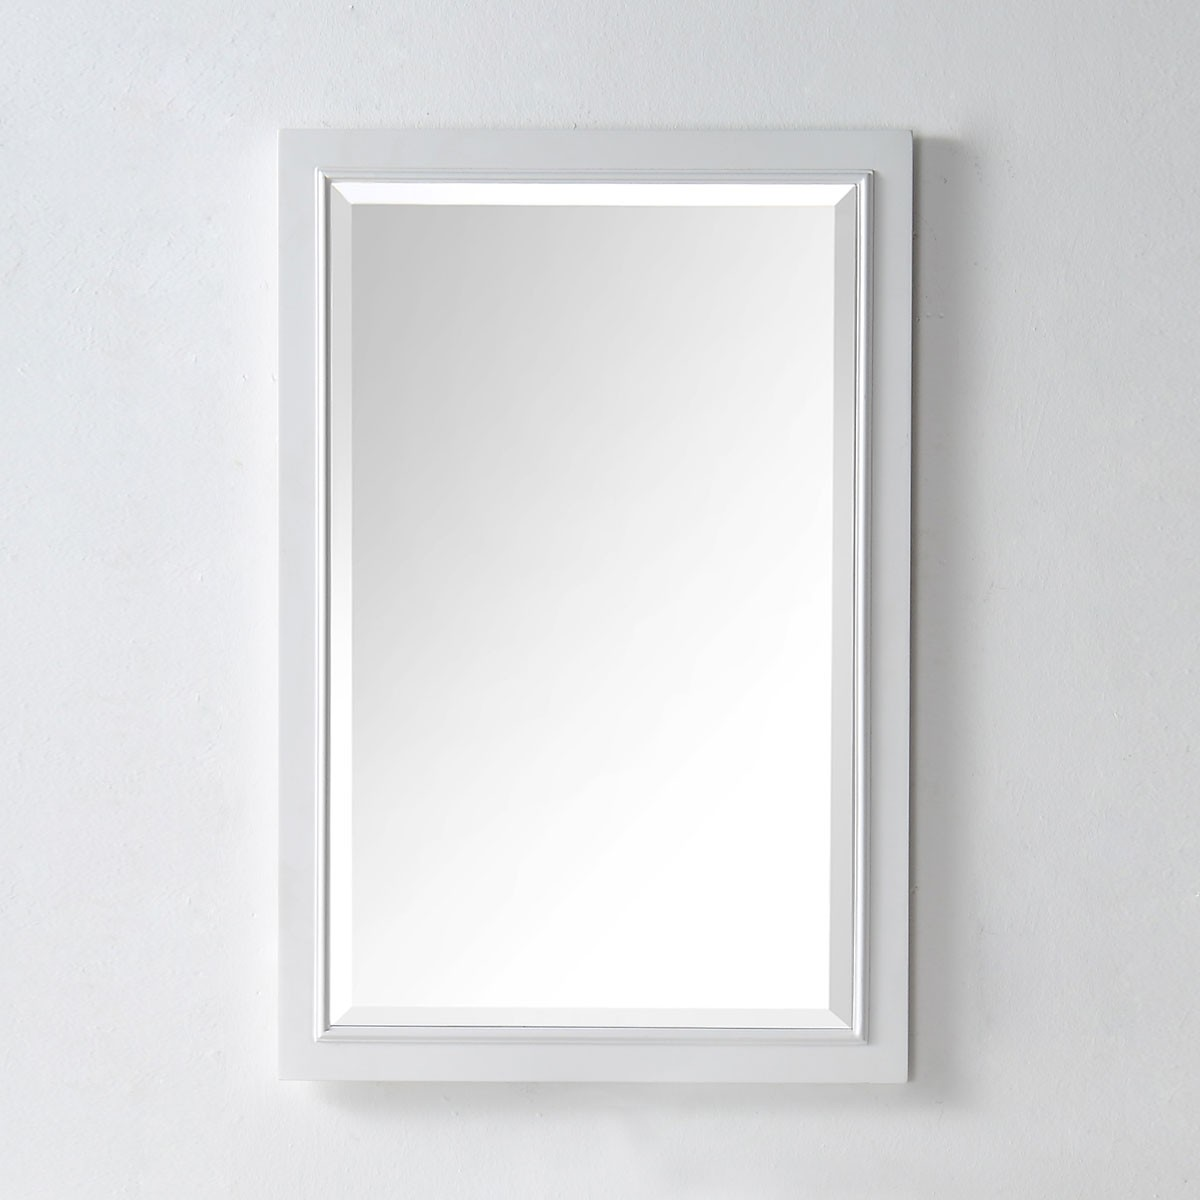 24 x 36 In Mirror with White Frame (DK-6000-WM)